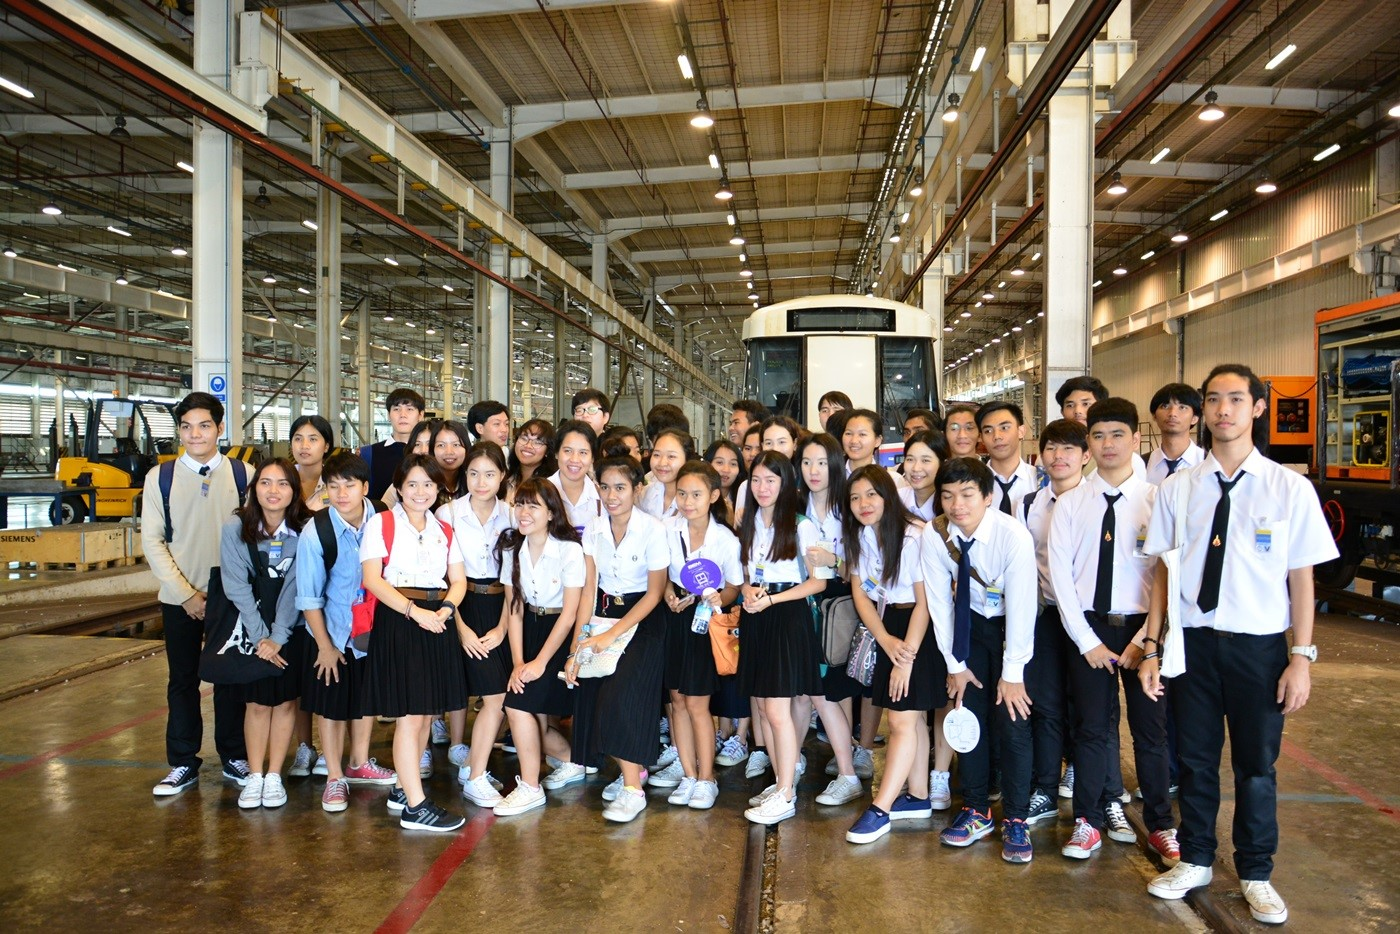 Teachers and students from Suan Sunandha Rajabhat University visit MRTA